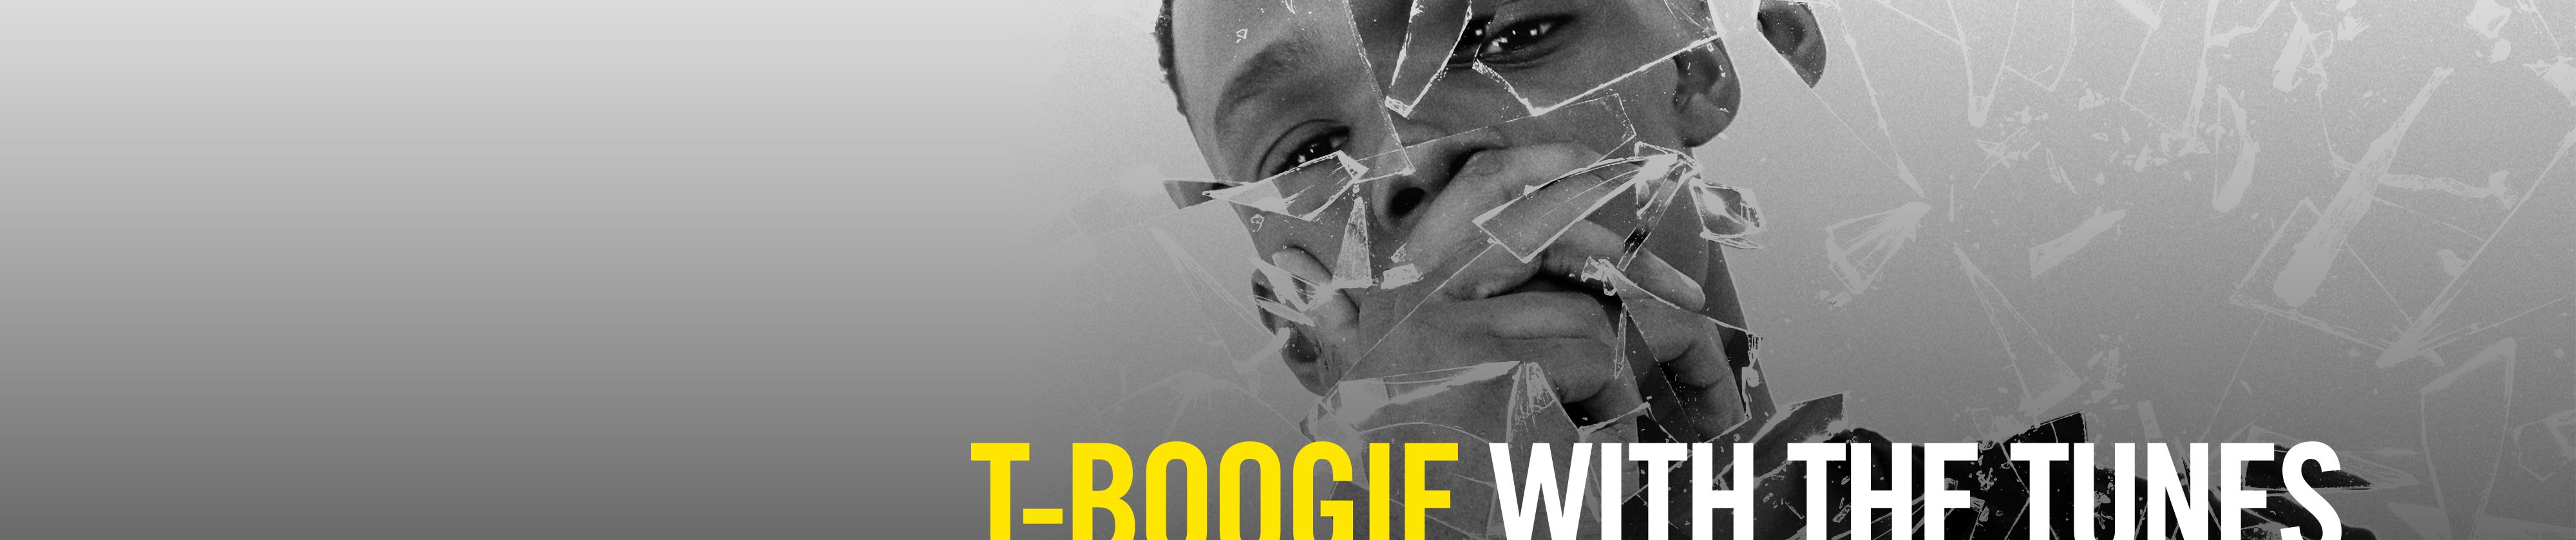 T-BoogieWithTheTunes Vol 9 (HipHop - Dancehall - Afrobeats)2019 by